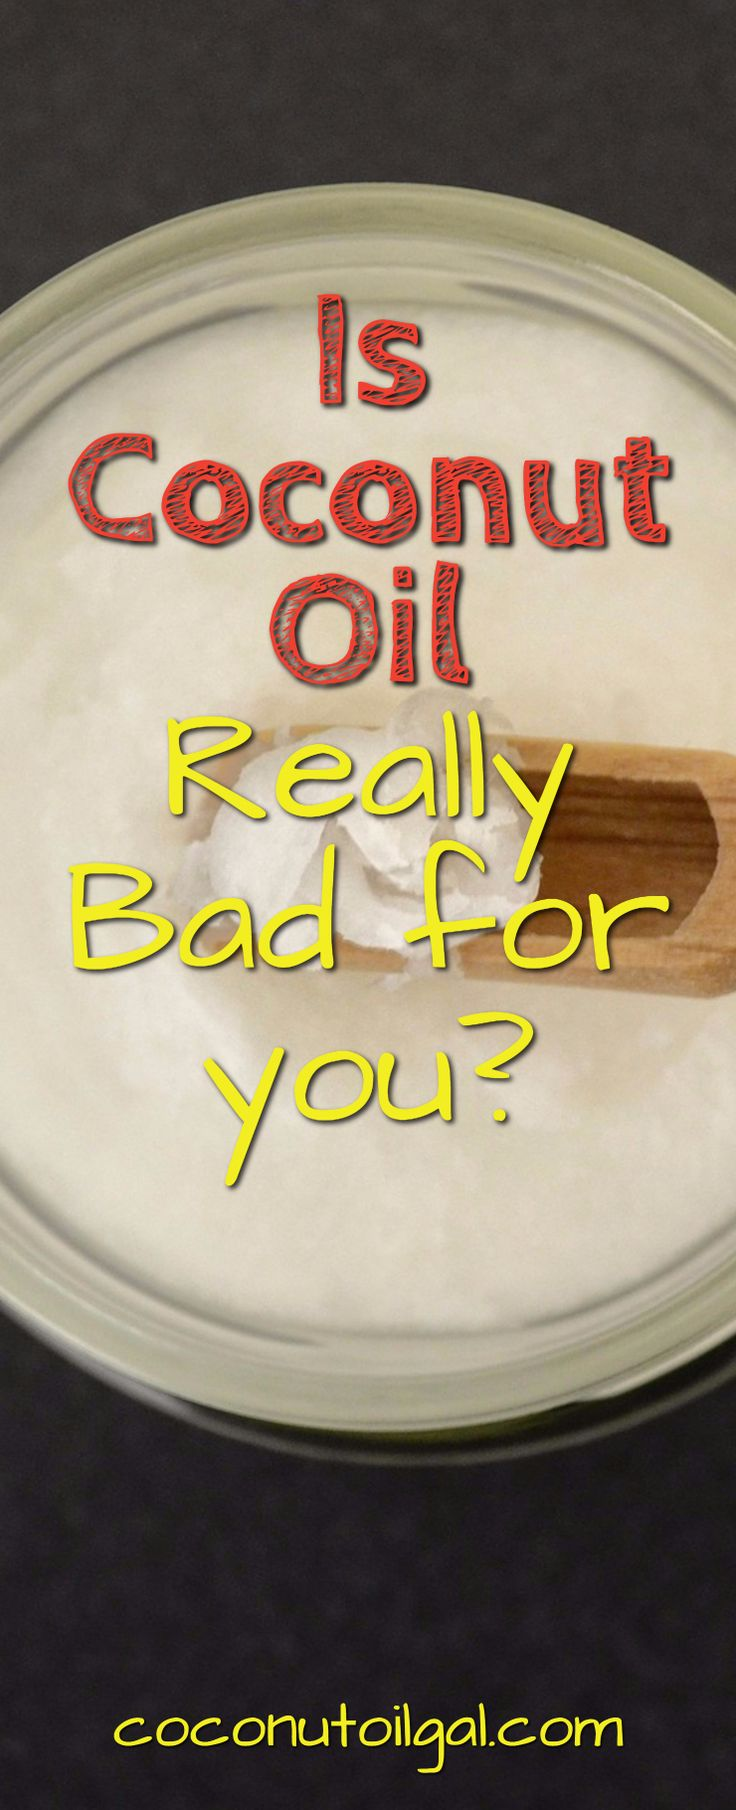 Is coconut oil actually really bad for you because it's a saturated fat? Let's take a look at coconut oil closely and see if in fact it is healthy to consume.